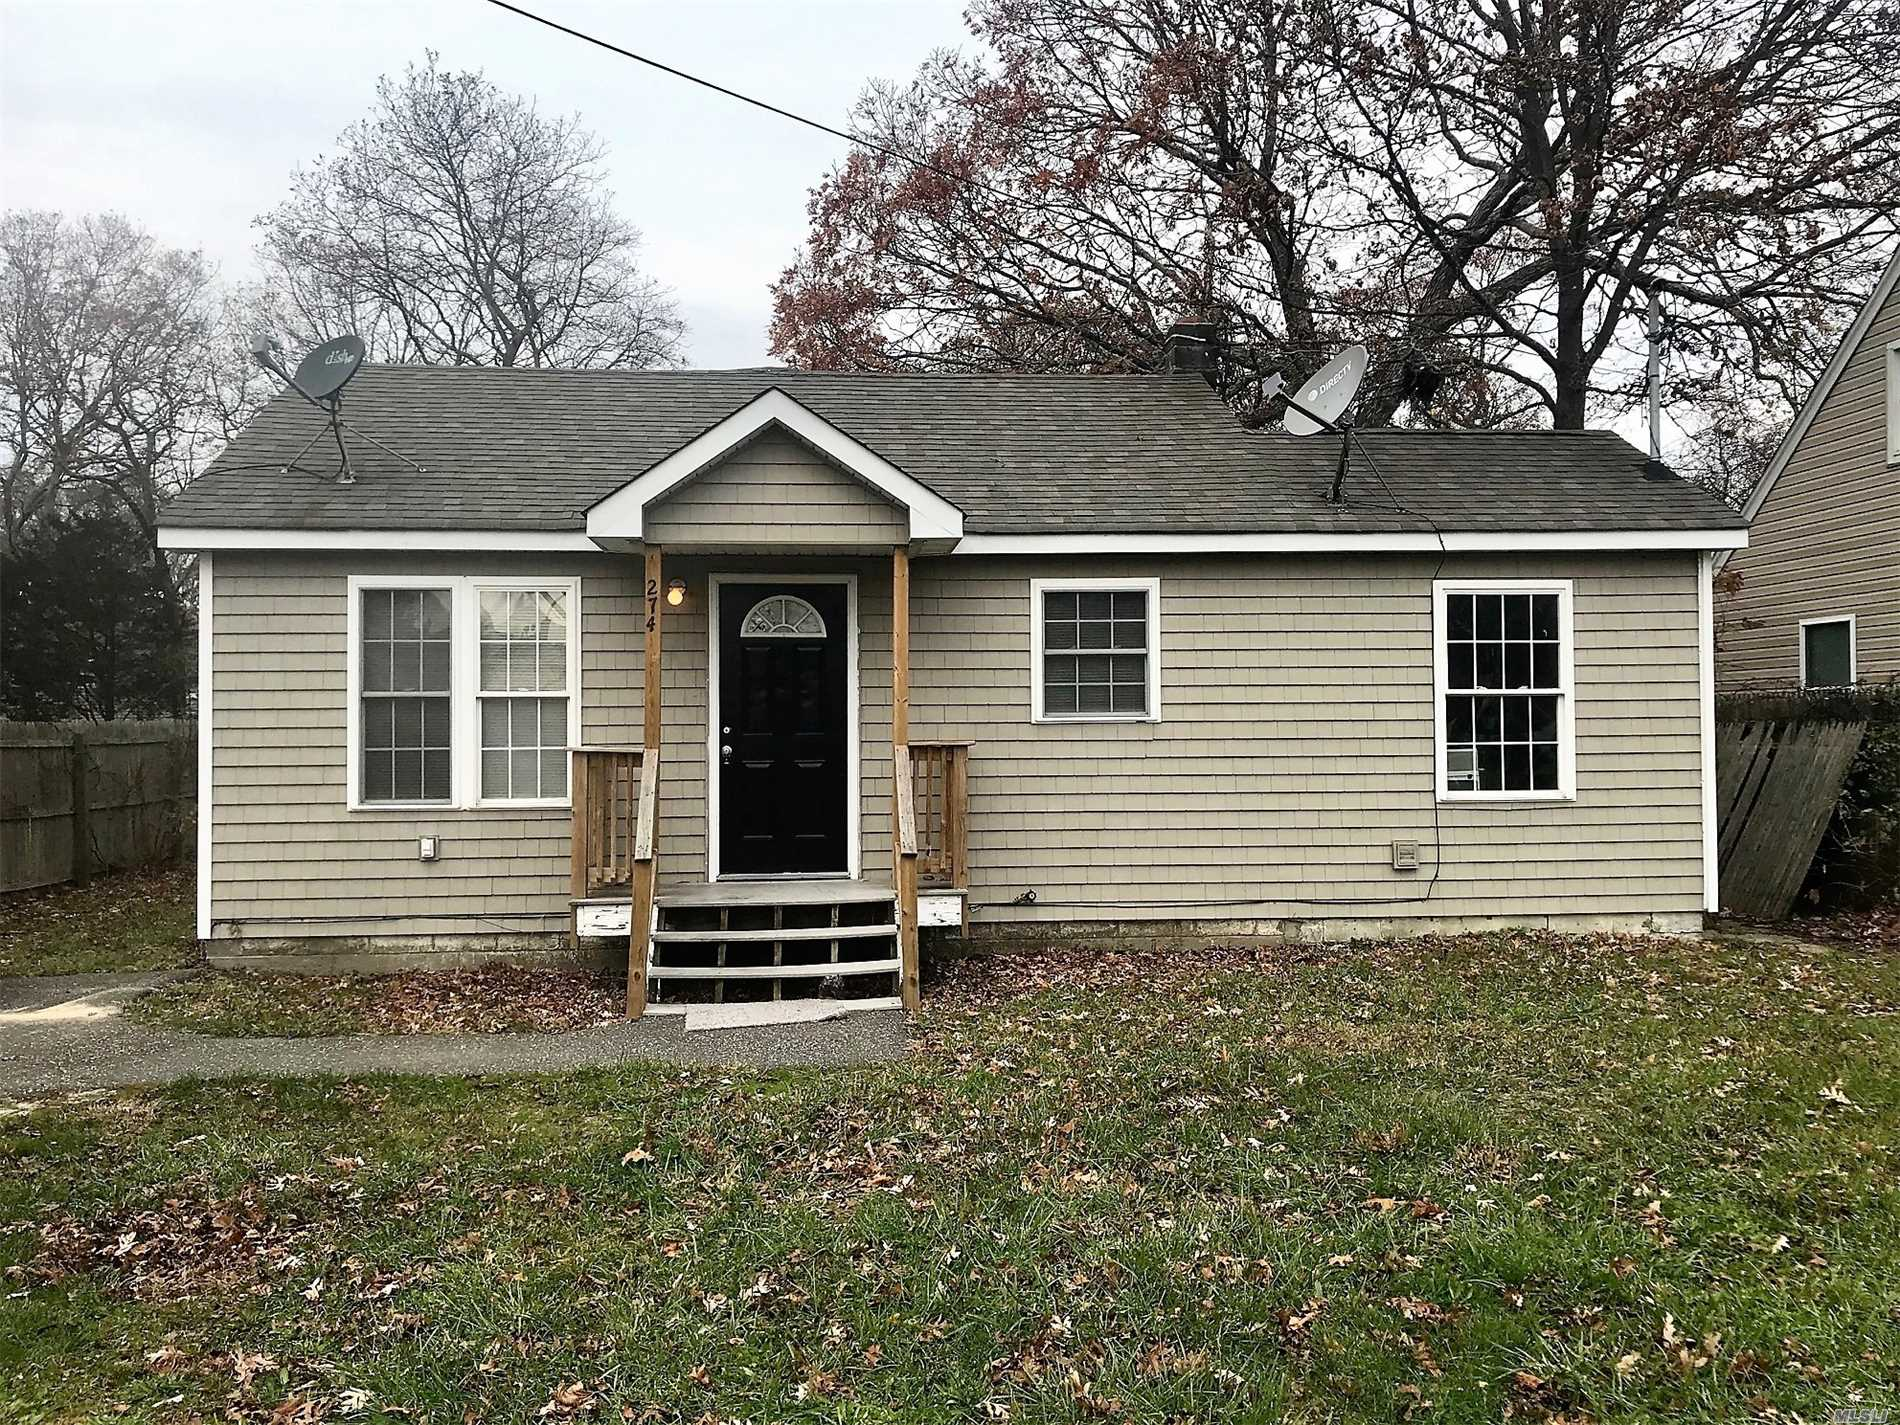 Perfect For Investors Or First-Time Homebuyers. Completely Renovated/Expanded In 2008 And Updated In 2018: Wood Floors Refinished, Brand New Appliances In Kitchen, Fresh Paint & Carpet. Lots Of Light, Open Floor Plan. Fenced Backyard. Home Is Approved For Cra Affordable Program If Buyer Qualifies.